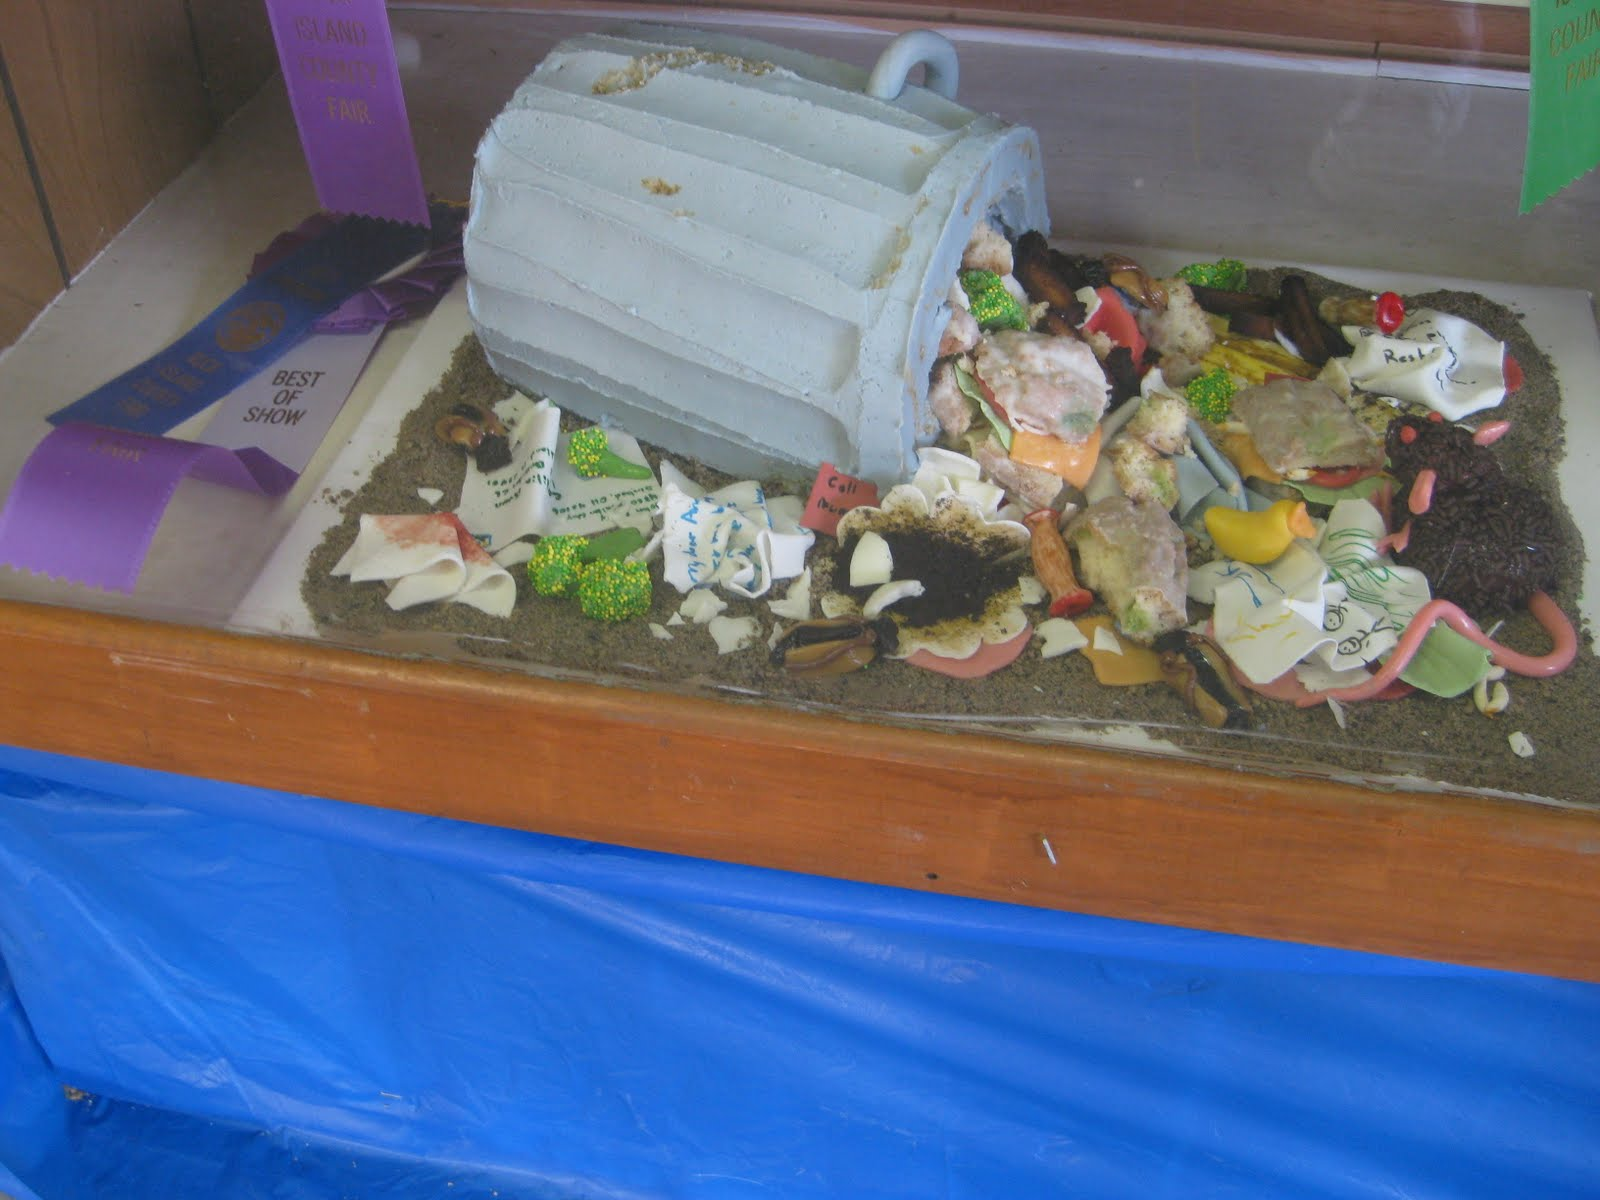 Cakes by the Sugar Cains: The Ugly Cake Contest at the Fair